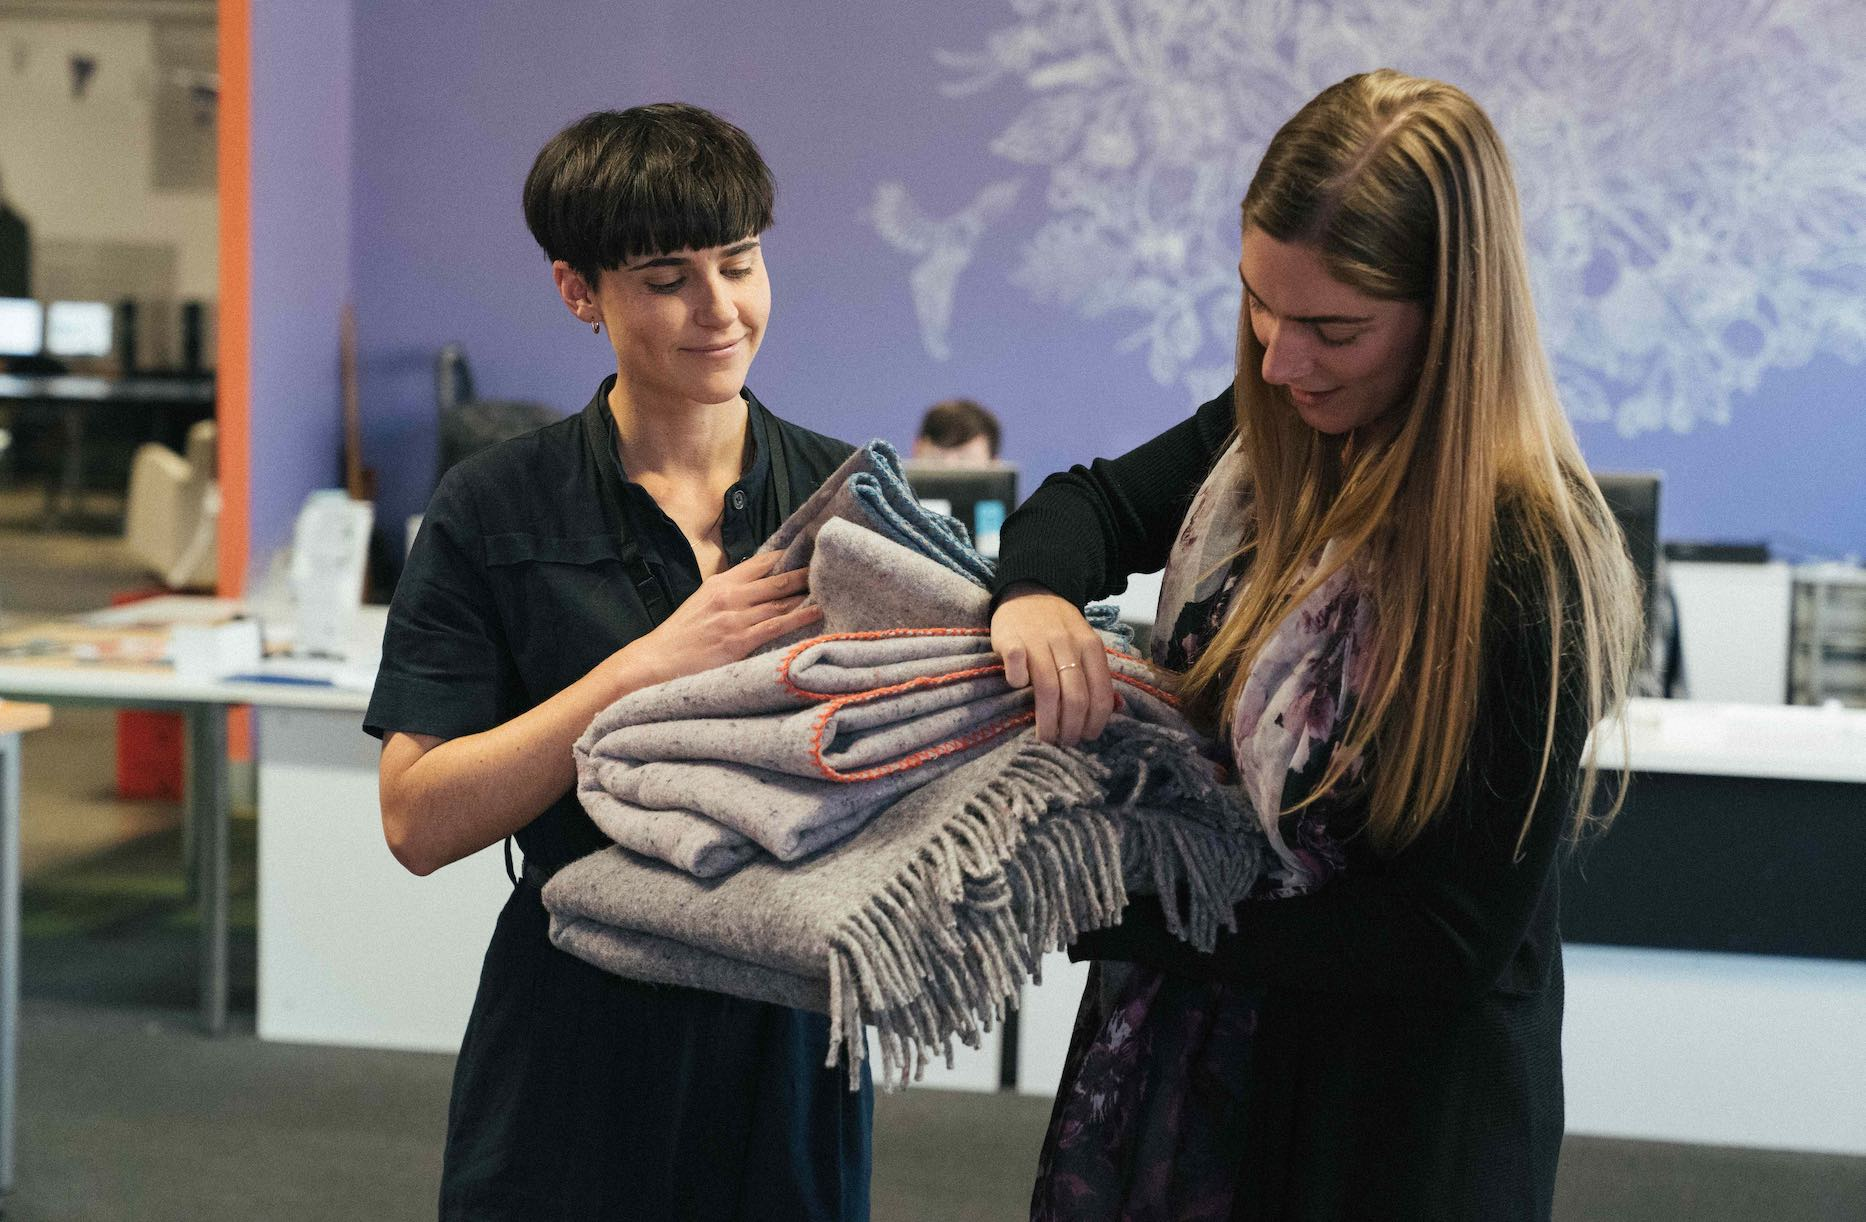 Karina donating blankets to the ASRC